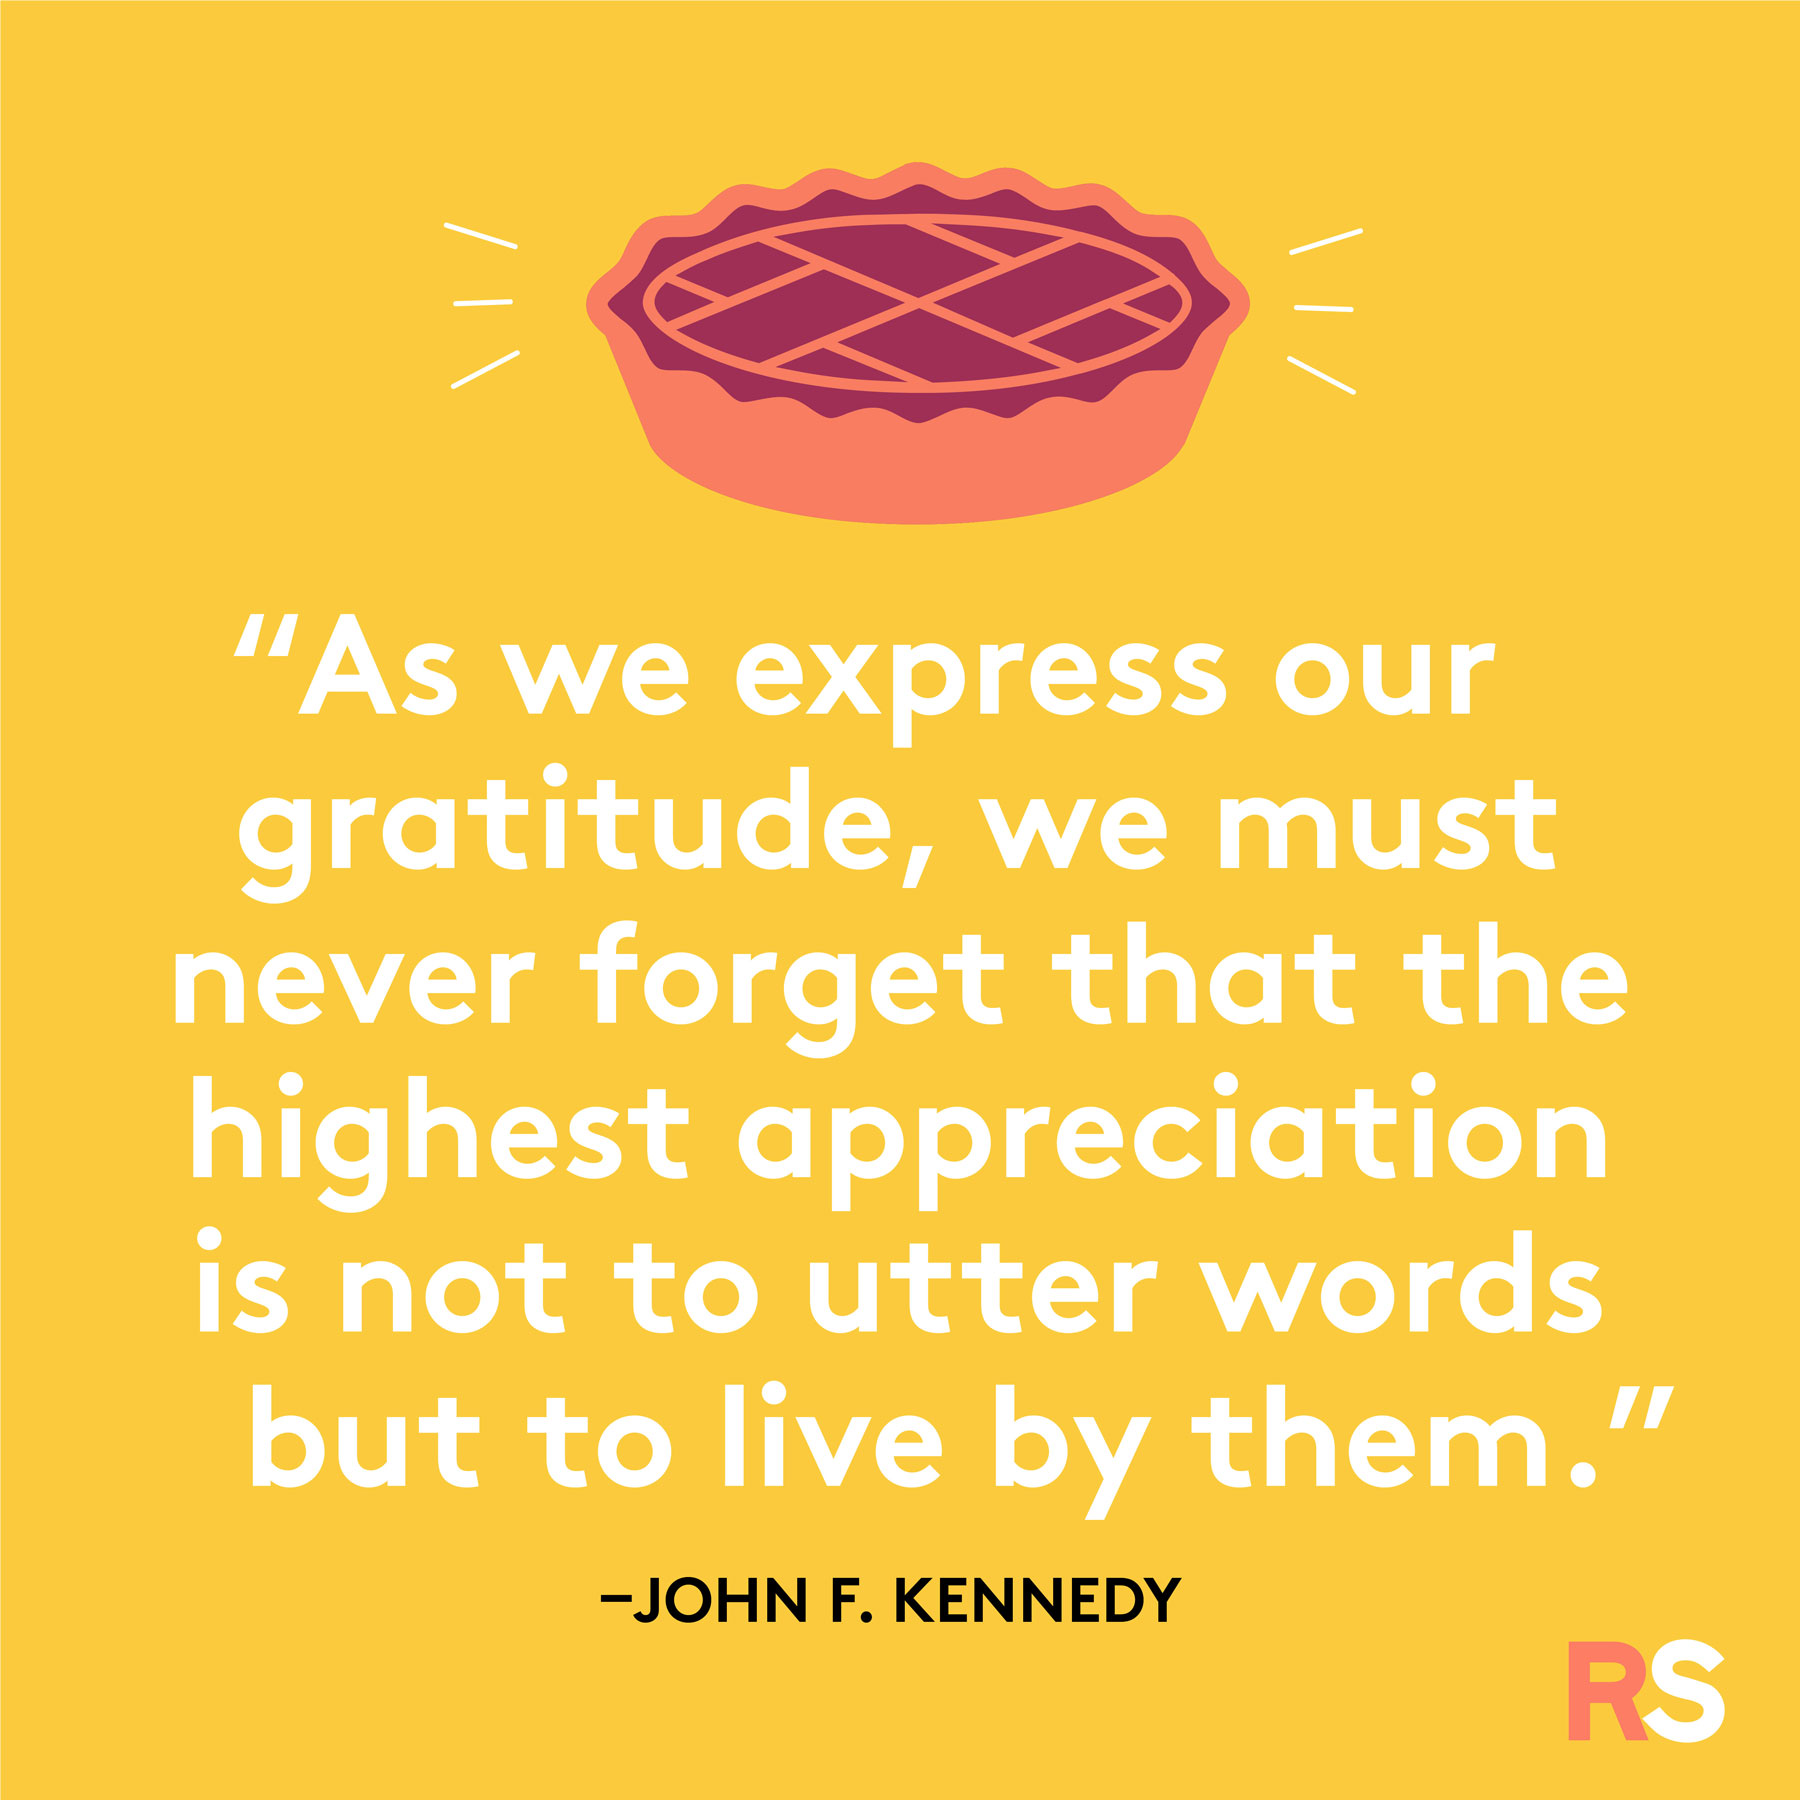 Thanksgiving wishes, messages, captions - john f kennedy